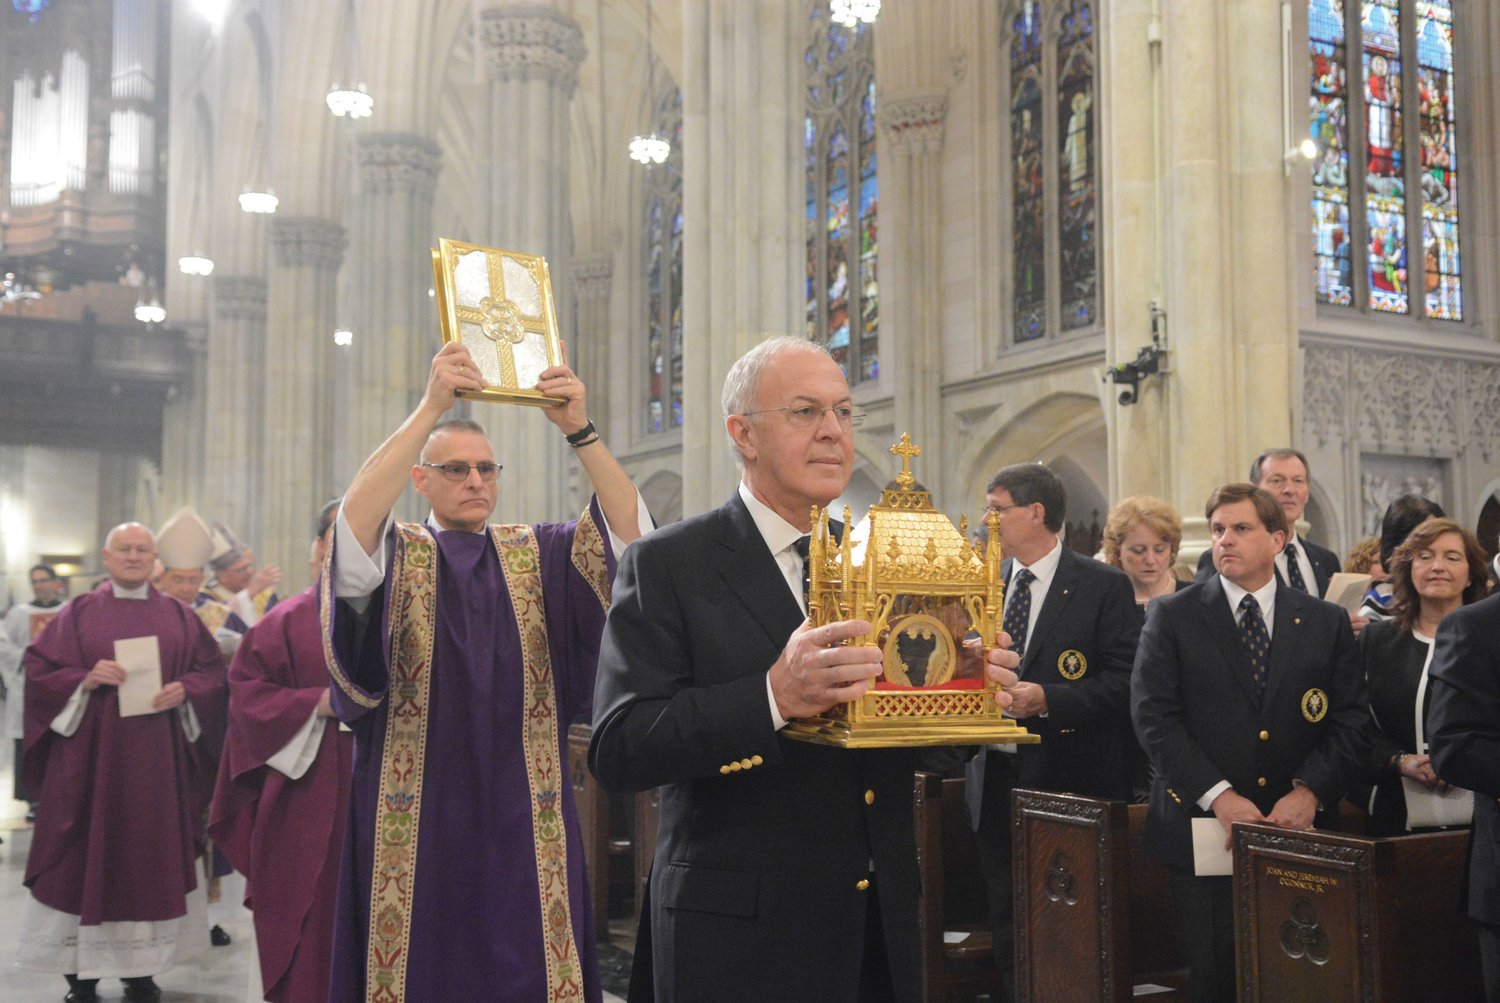 Supreme Knight Carl Anderson processes with the reliquary containing the incorrupt heart of St. John Vianney at the April 7 Mass Cardinal Dolan offered at St. Patrick's Cathedral. Msgr. Robert Ritchie, rector of the cathedral, is pictured third from back, followed by Archbishop William Lori, supreme chaplain of the Knights of Columbus, and Cardinal Dolan.